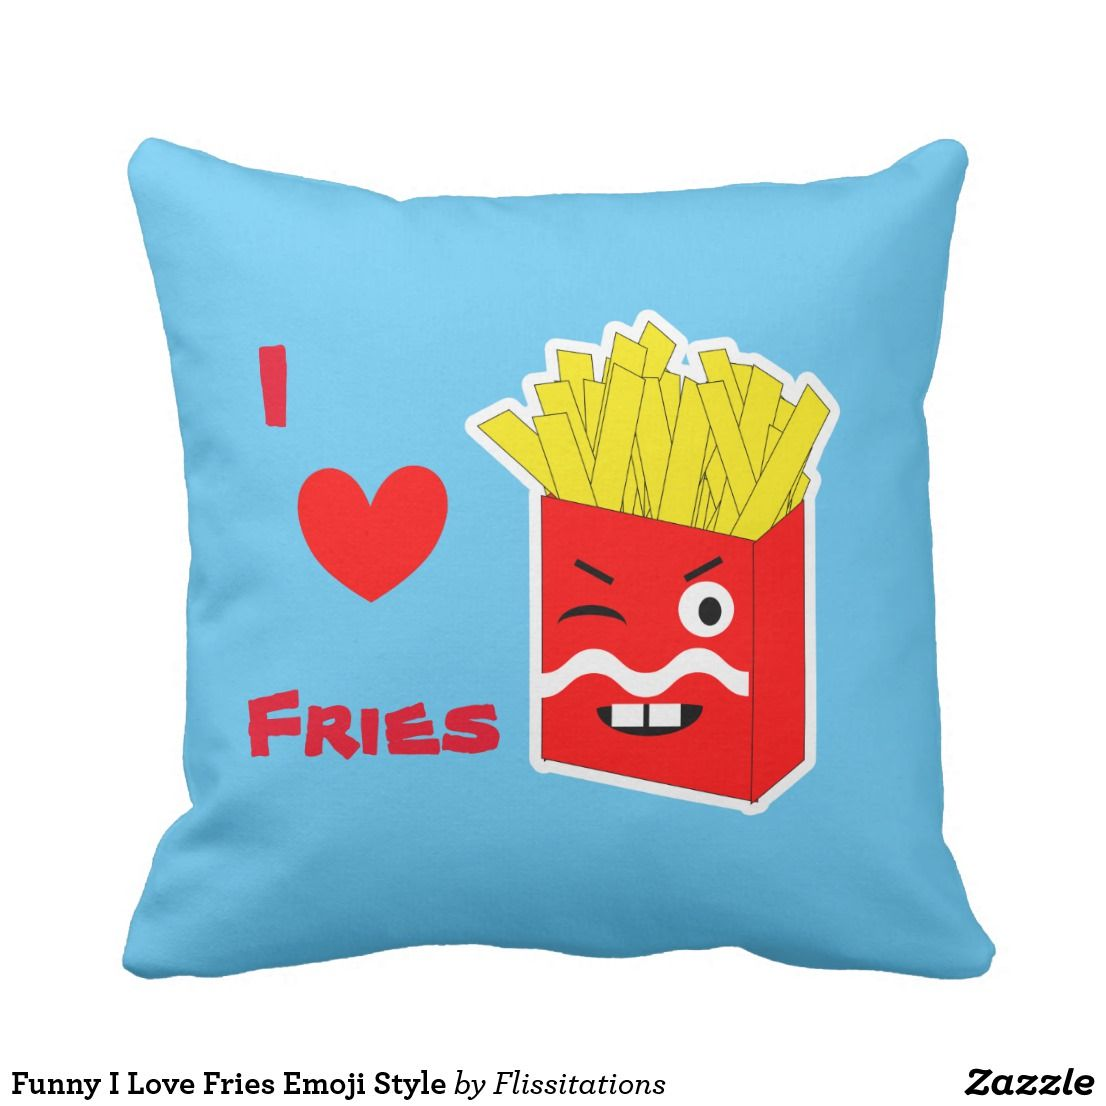 Funny i love fries emoji style throw pillow emoji pillows pinterest